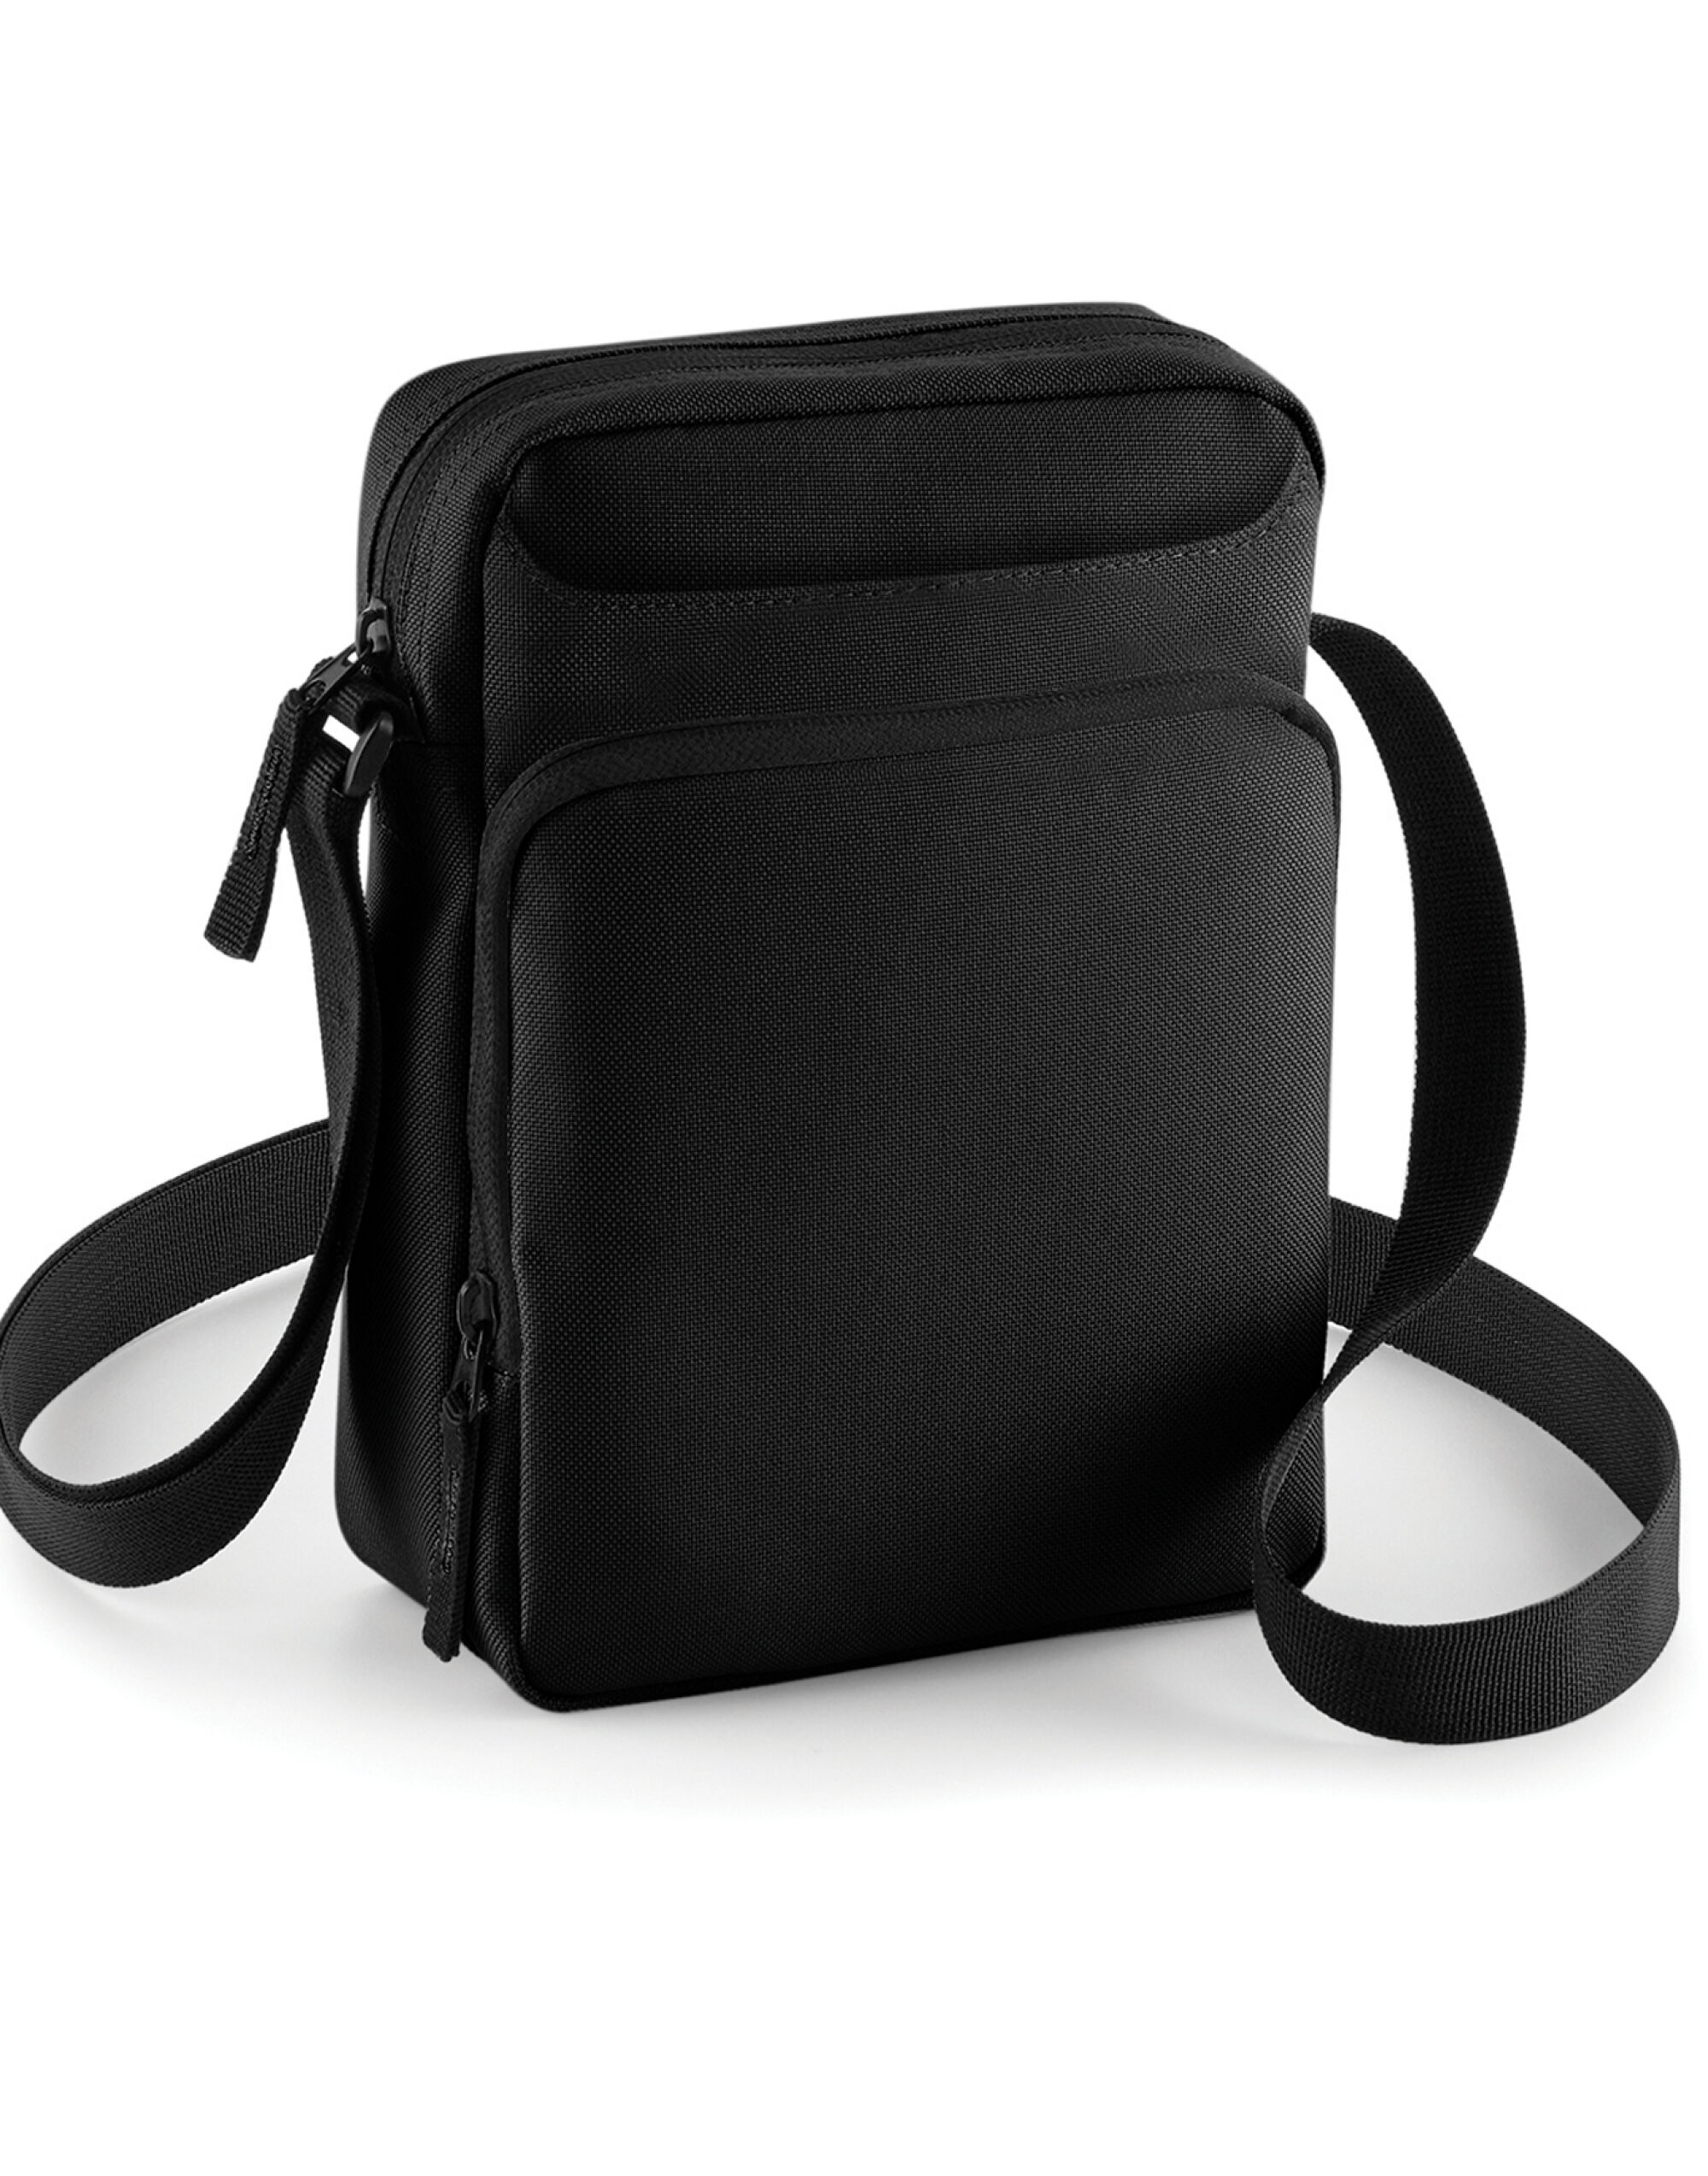 Bagbase Accross Body Bag